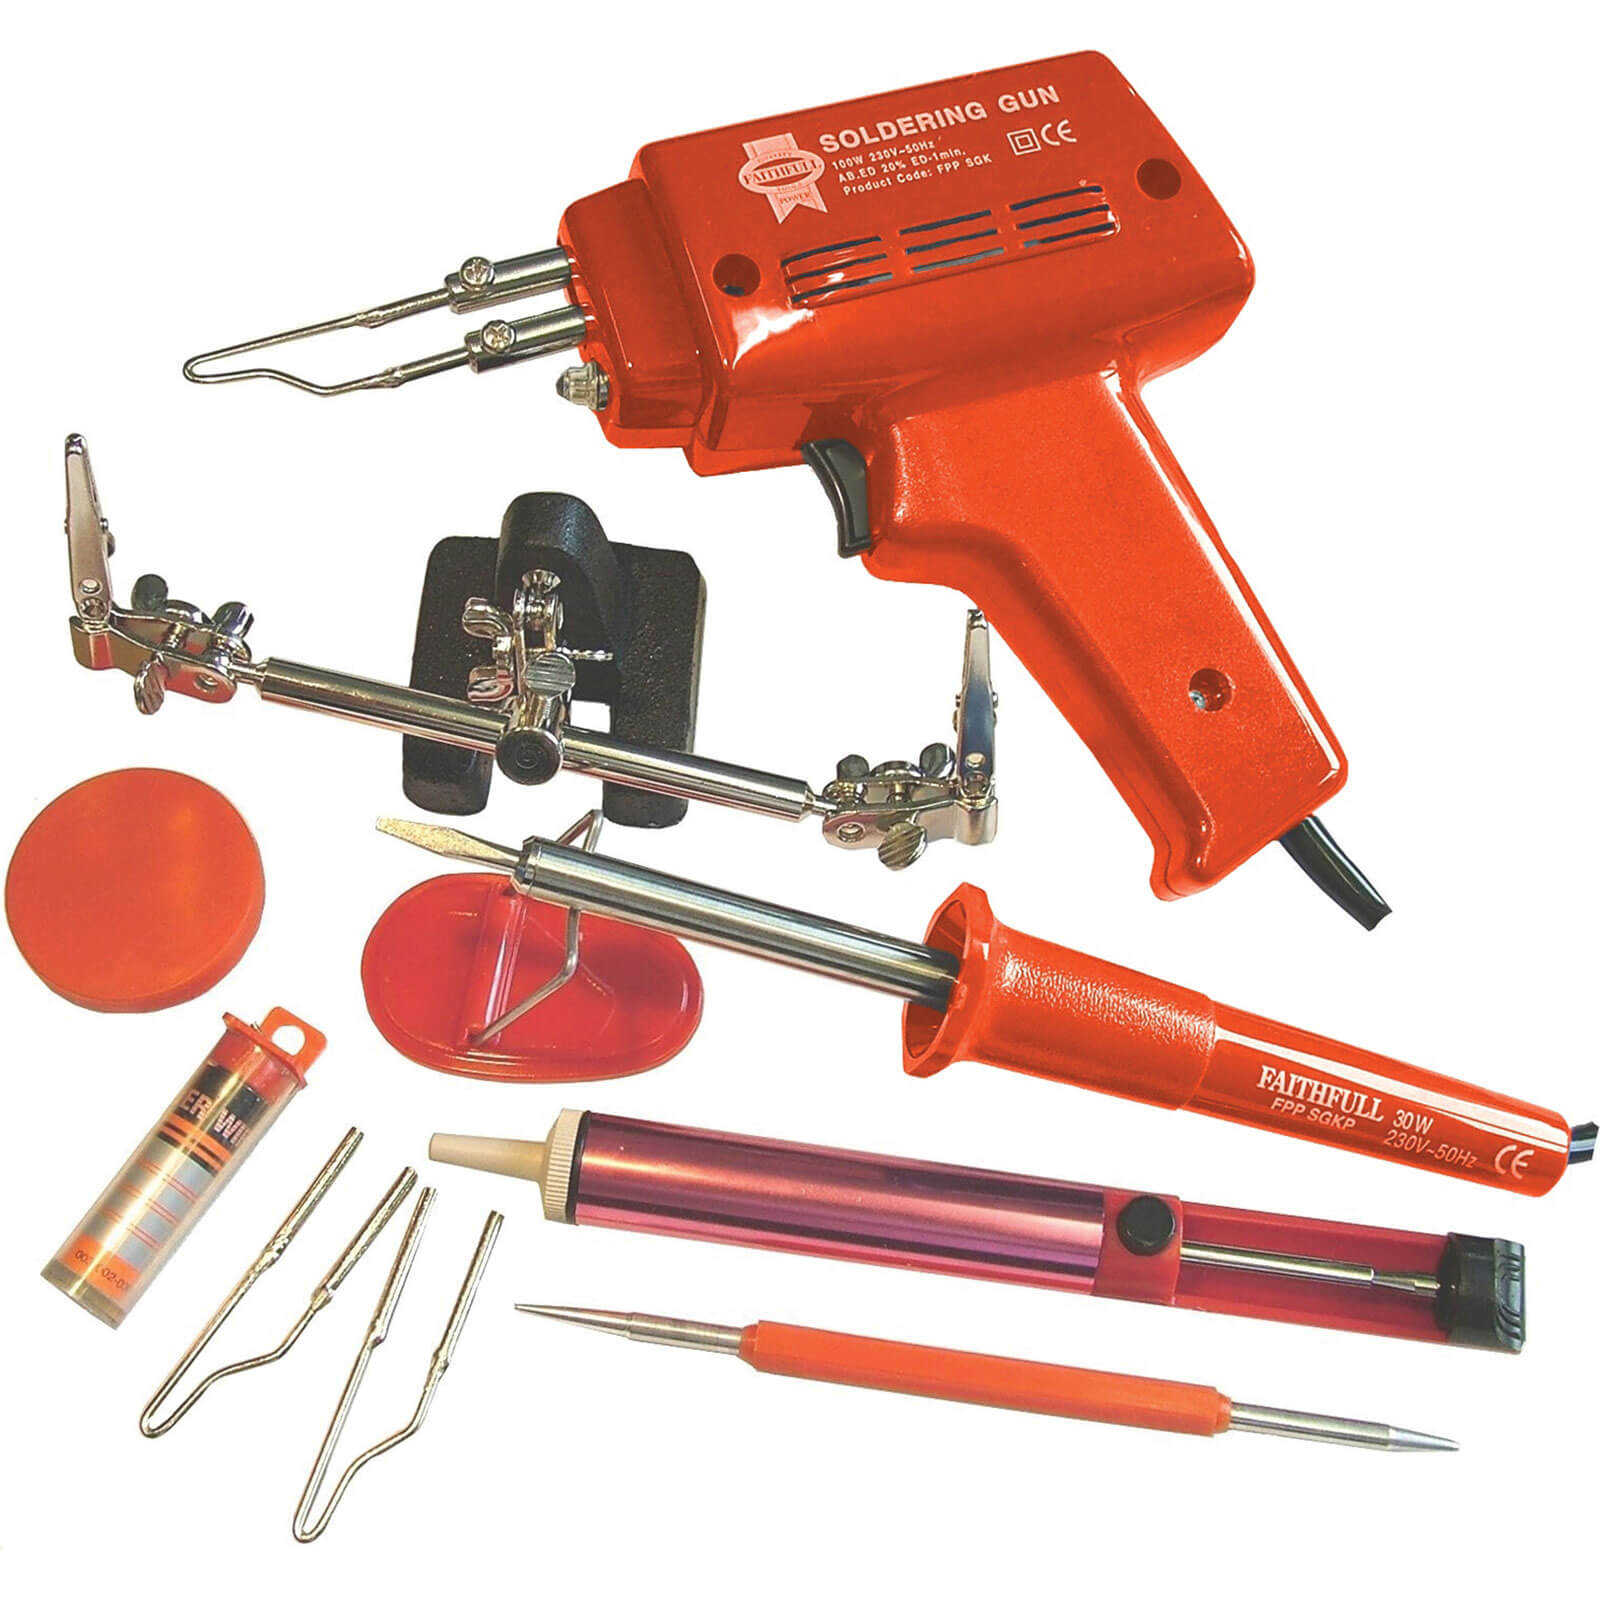 buy cheap soldering iron kit compare power tools prices. Black Bedroom Furniture Sets. Home Design Ideas